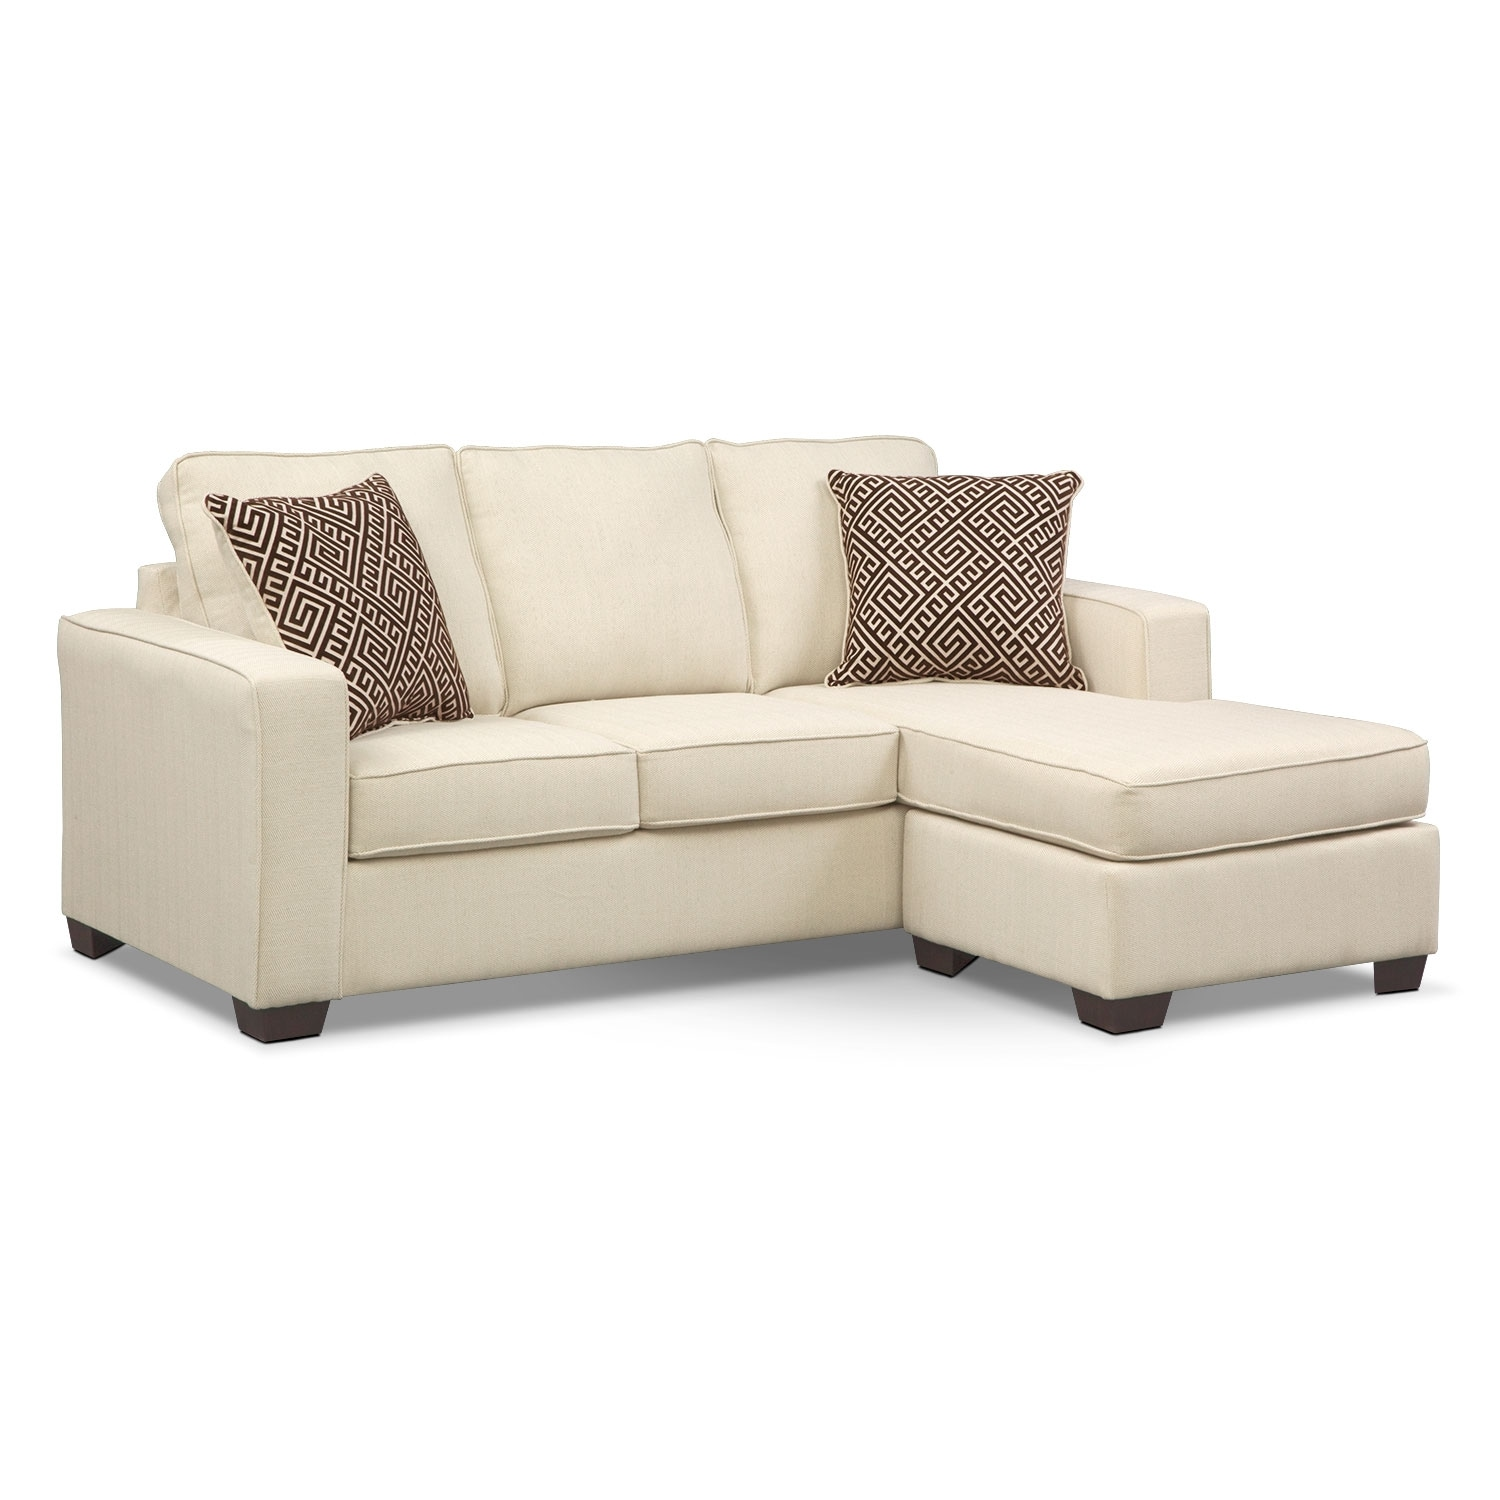 Sterling Innerspring Sleeper Sofa With Chaise Beige American Signature Furniture